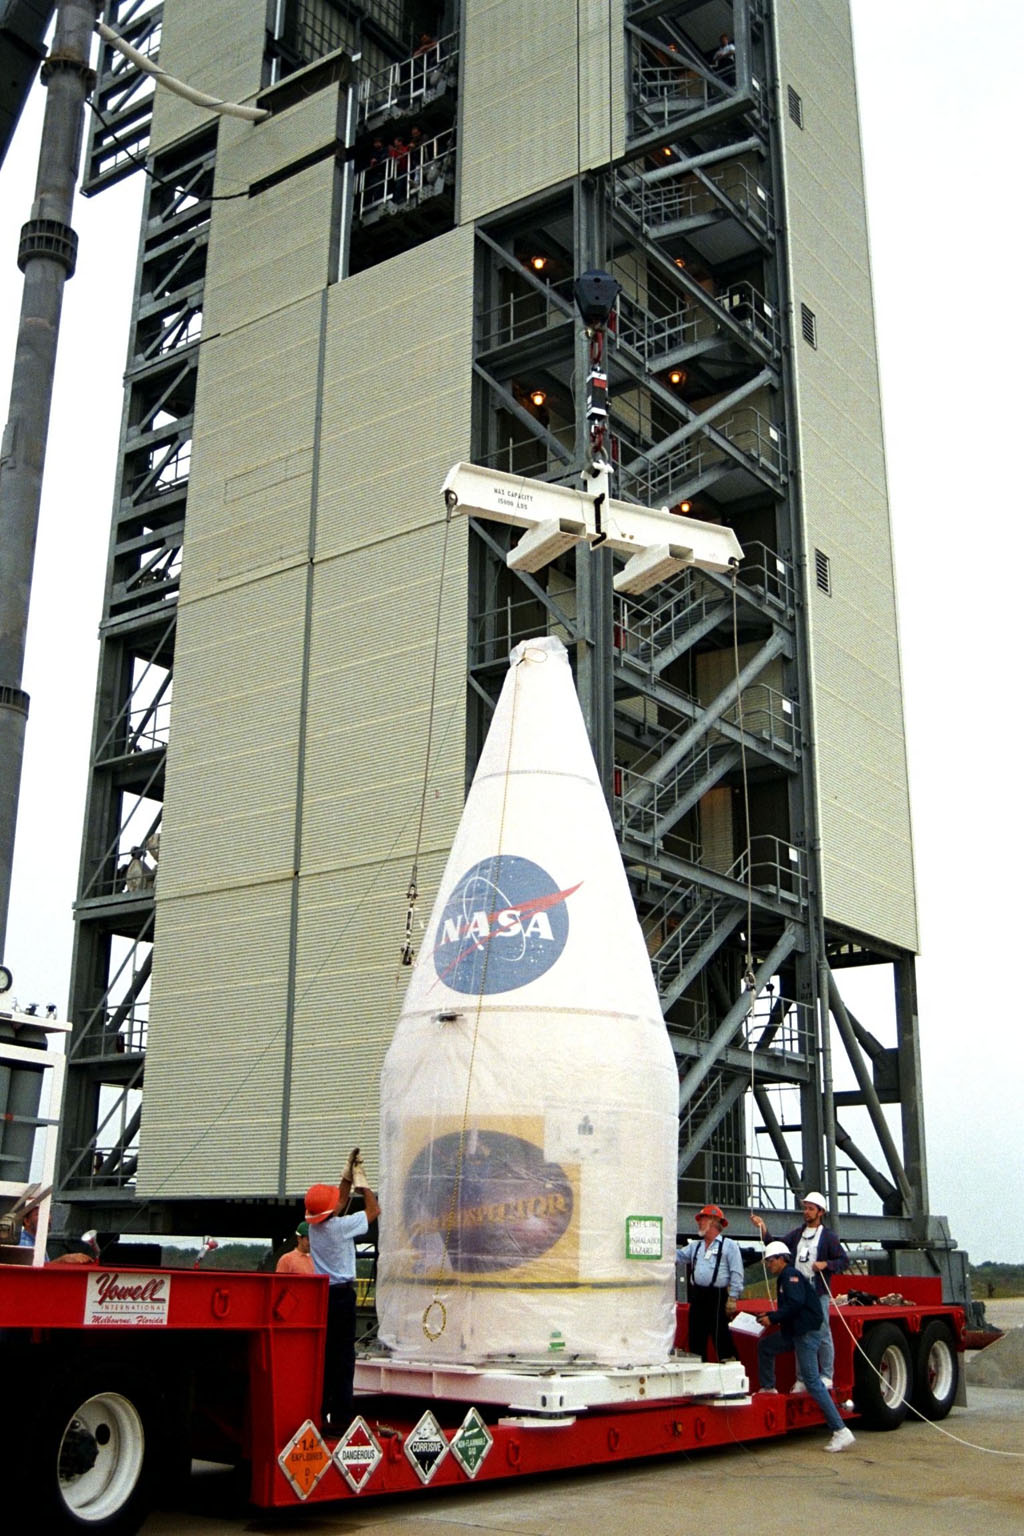 NASA?s Lunar Prospector is prepared for mating to a Lockheed Martin Athena II launch vehicle at Cape Canaveral Air Station?s Launch Complex 46. Lunar Prospector, built for the NASA Ames Research Center by Lockheed Martin, is a spin-stabilized spacecraft designed to provide NASA the first global maps of the Moon?s surface and its gravitational magnetic fields. It will orbit the Moon at an altitude of approximately 63 miles during a one-year mission. The launch of Lunar Prospector is scheduled for Jan. 5, 1998 at 8:31 p.m. EST